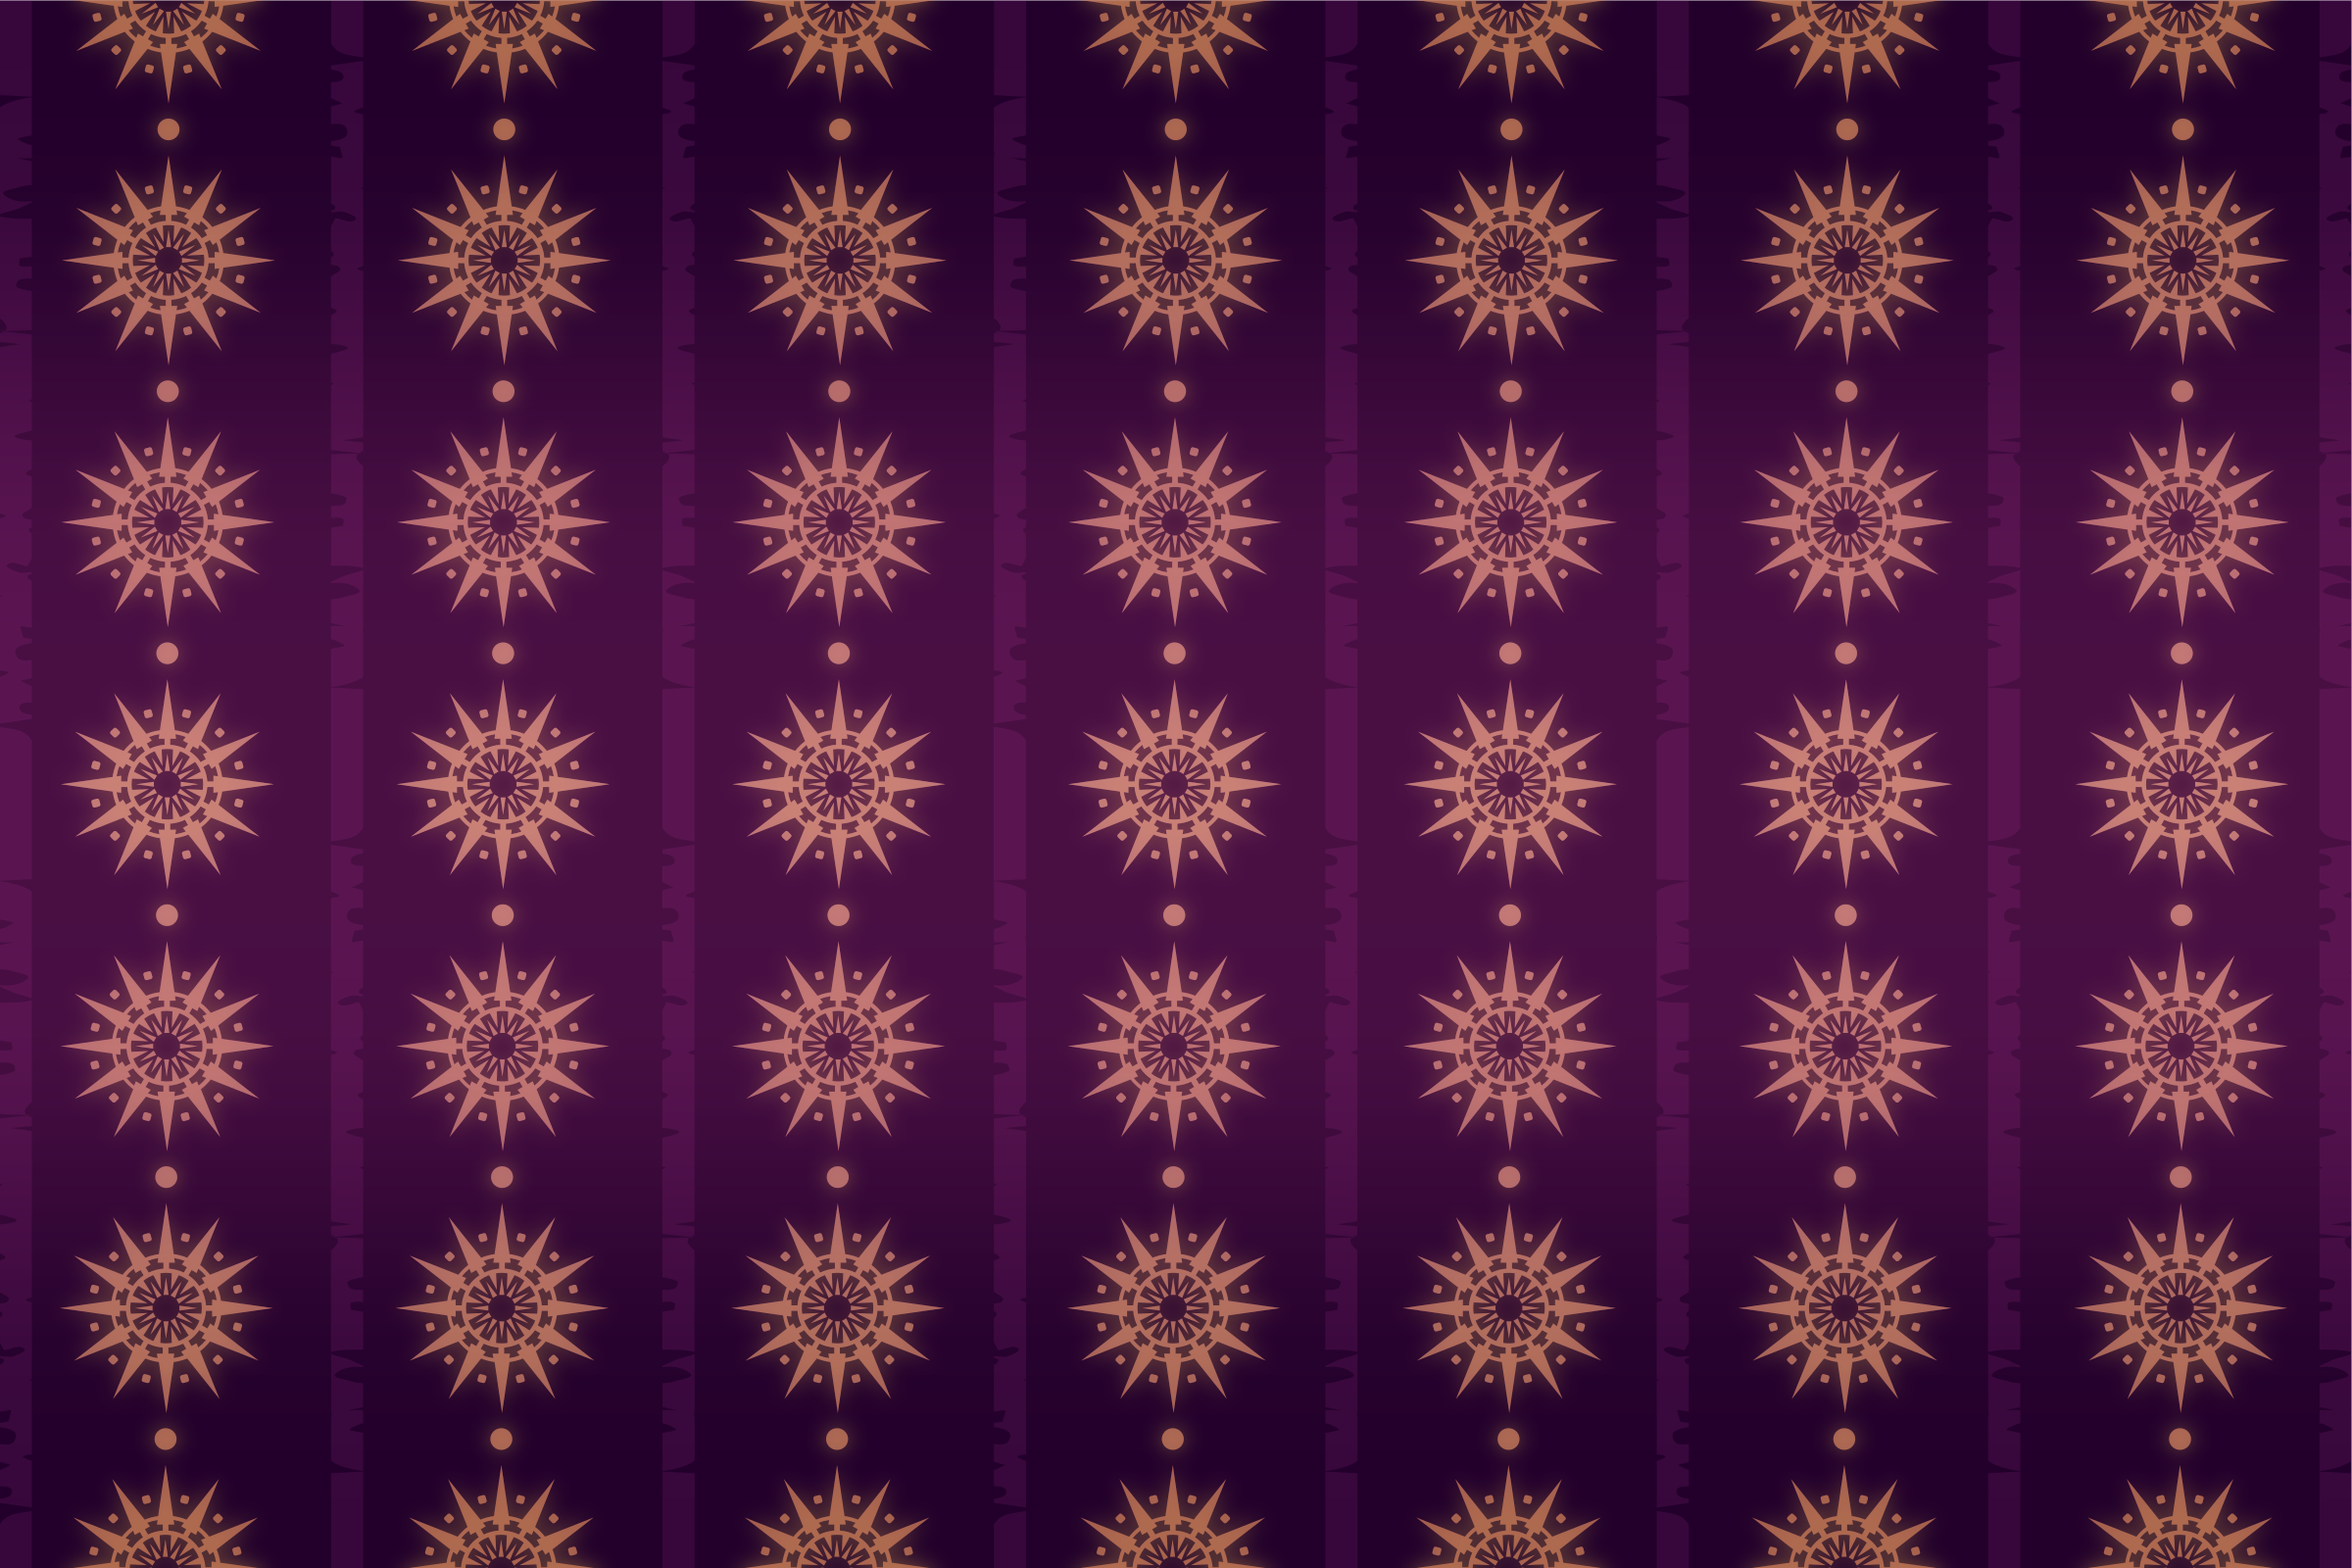 Background Patterns - Aubergine by Viscious-Speed